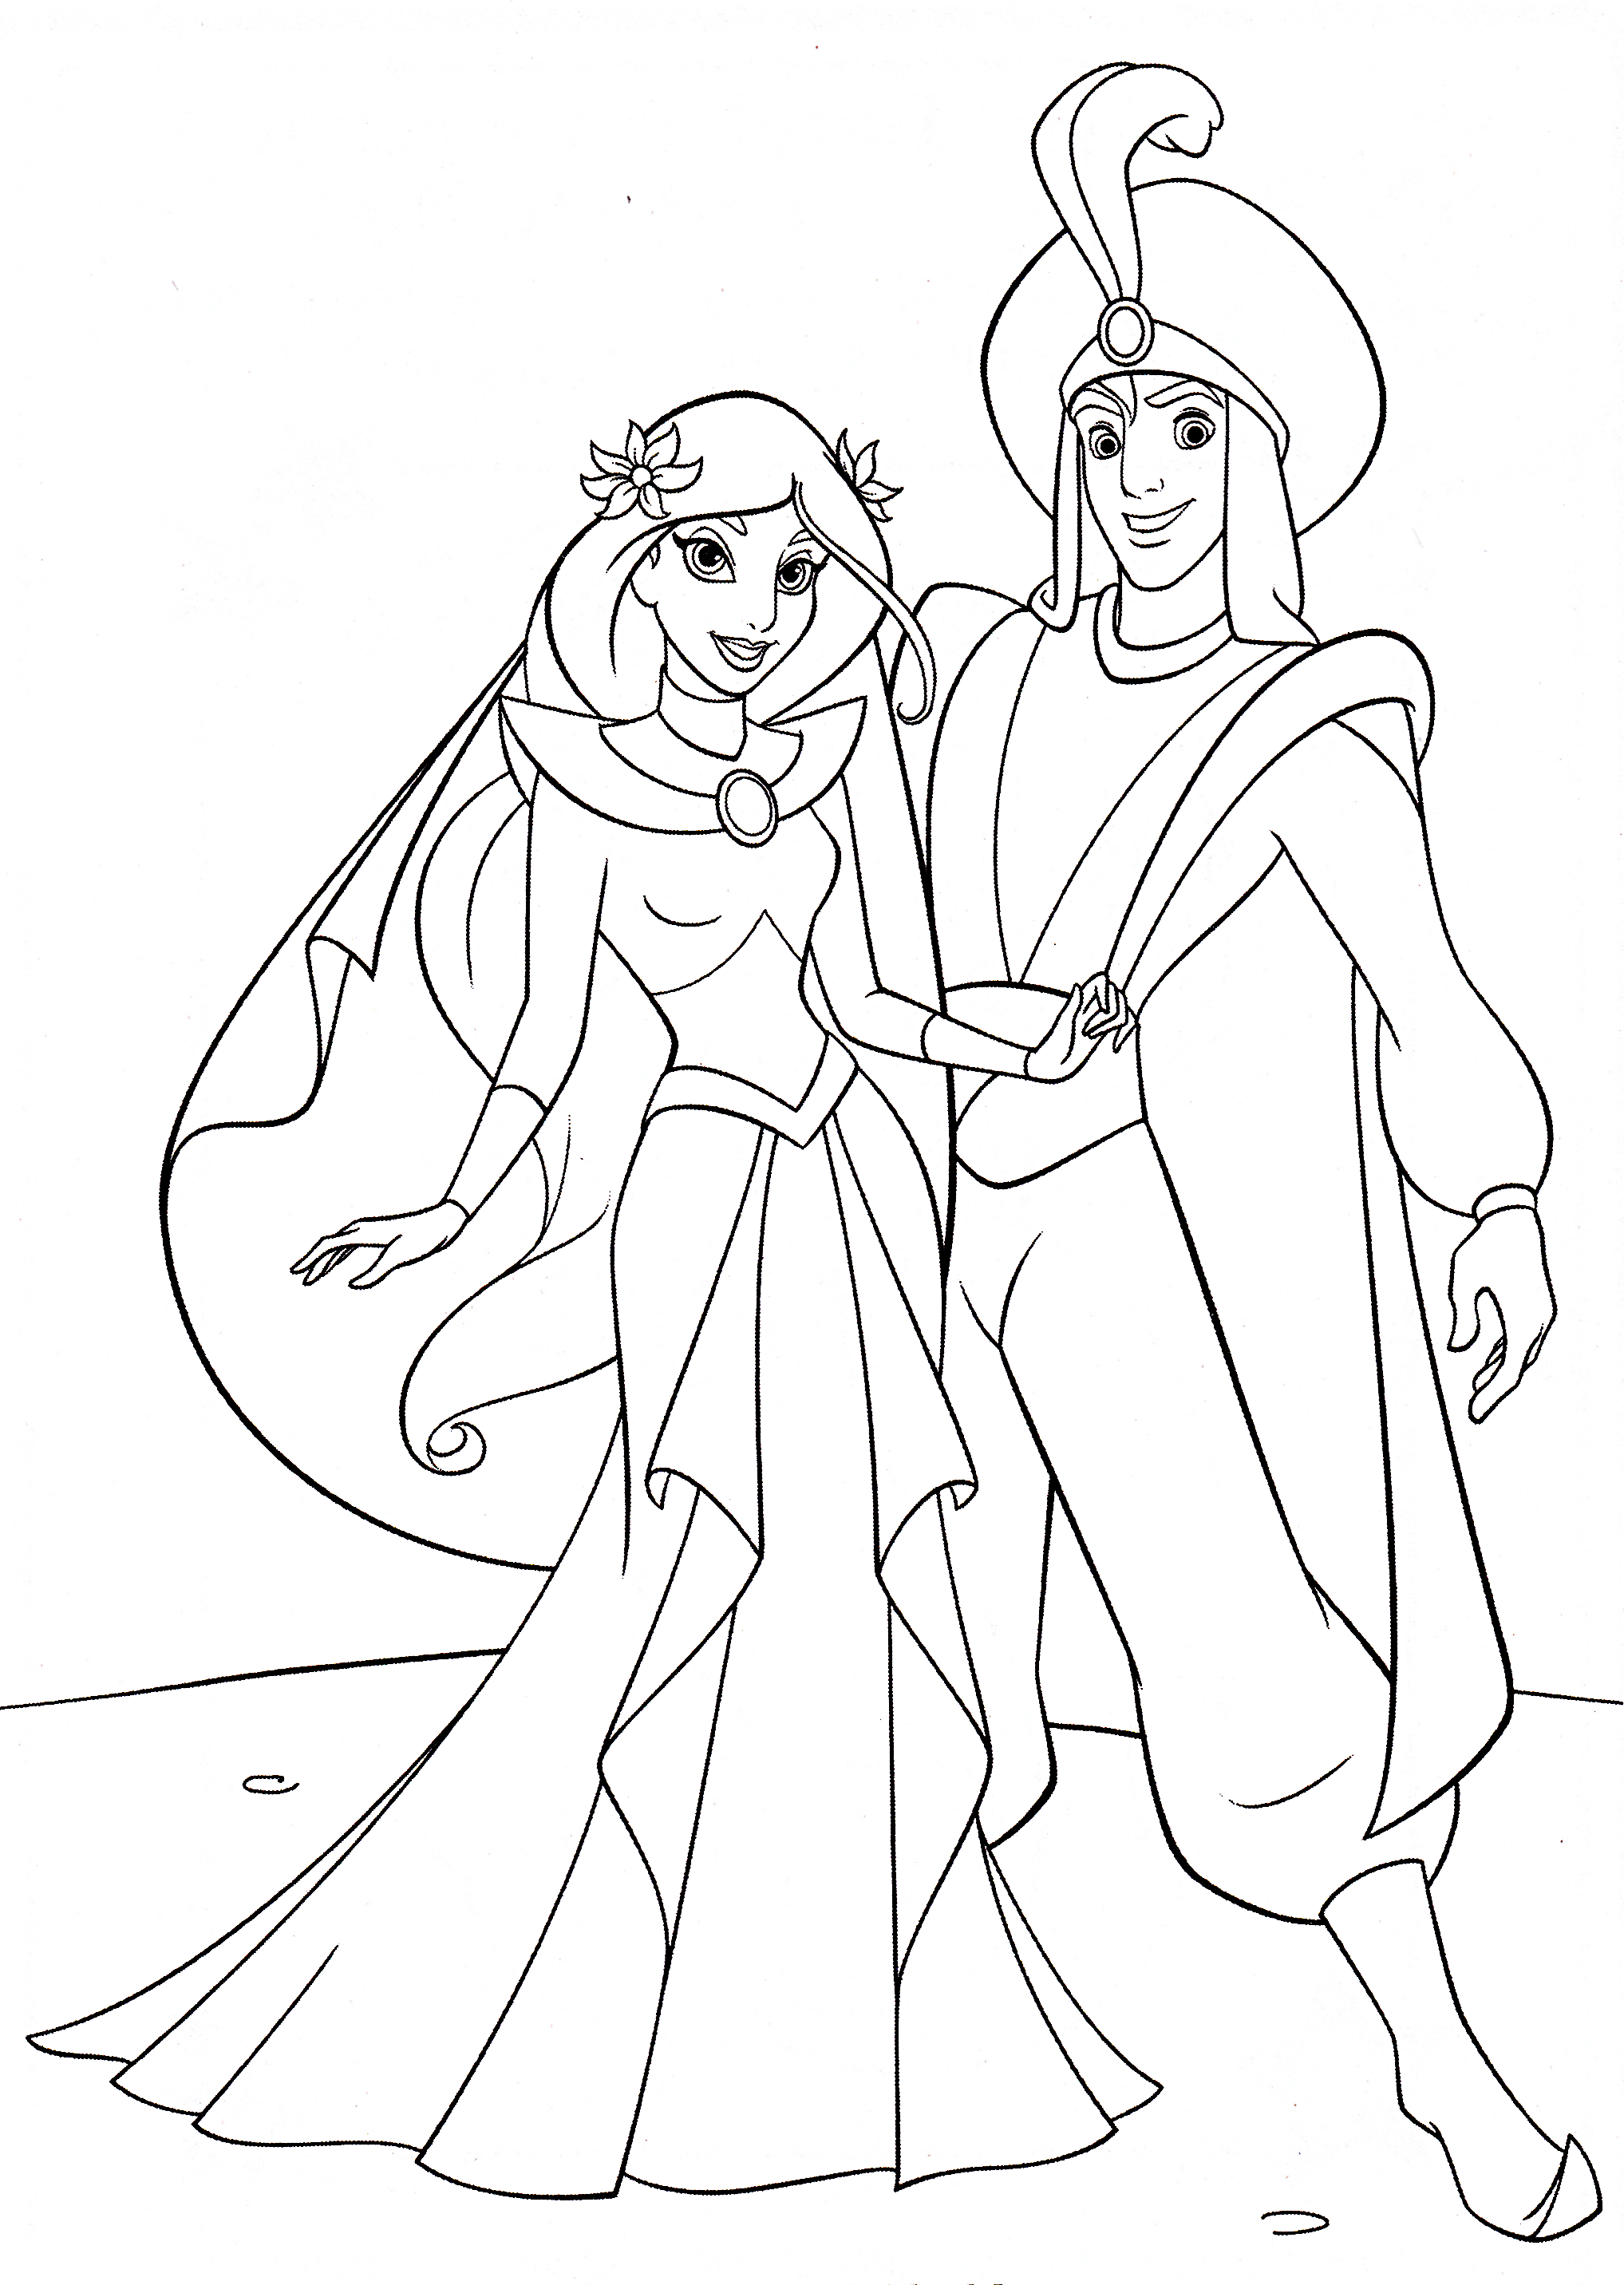 Walt Disney Coloring Pages Princess Jasmine Prince Aladdin Princess And Prince Coloring Pages